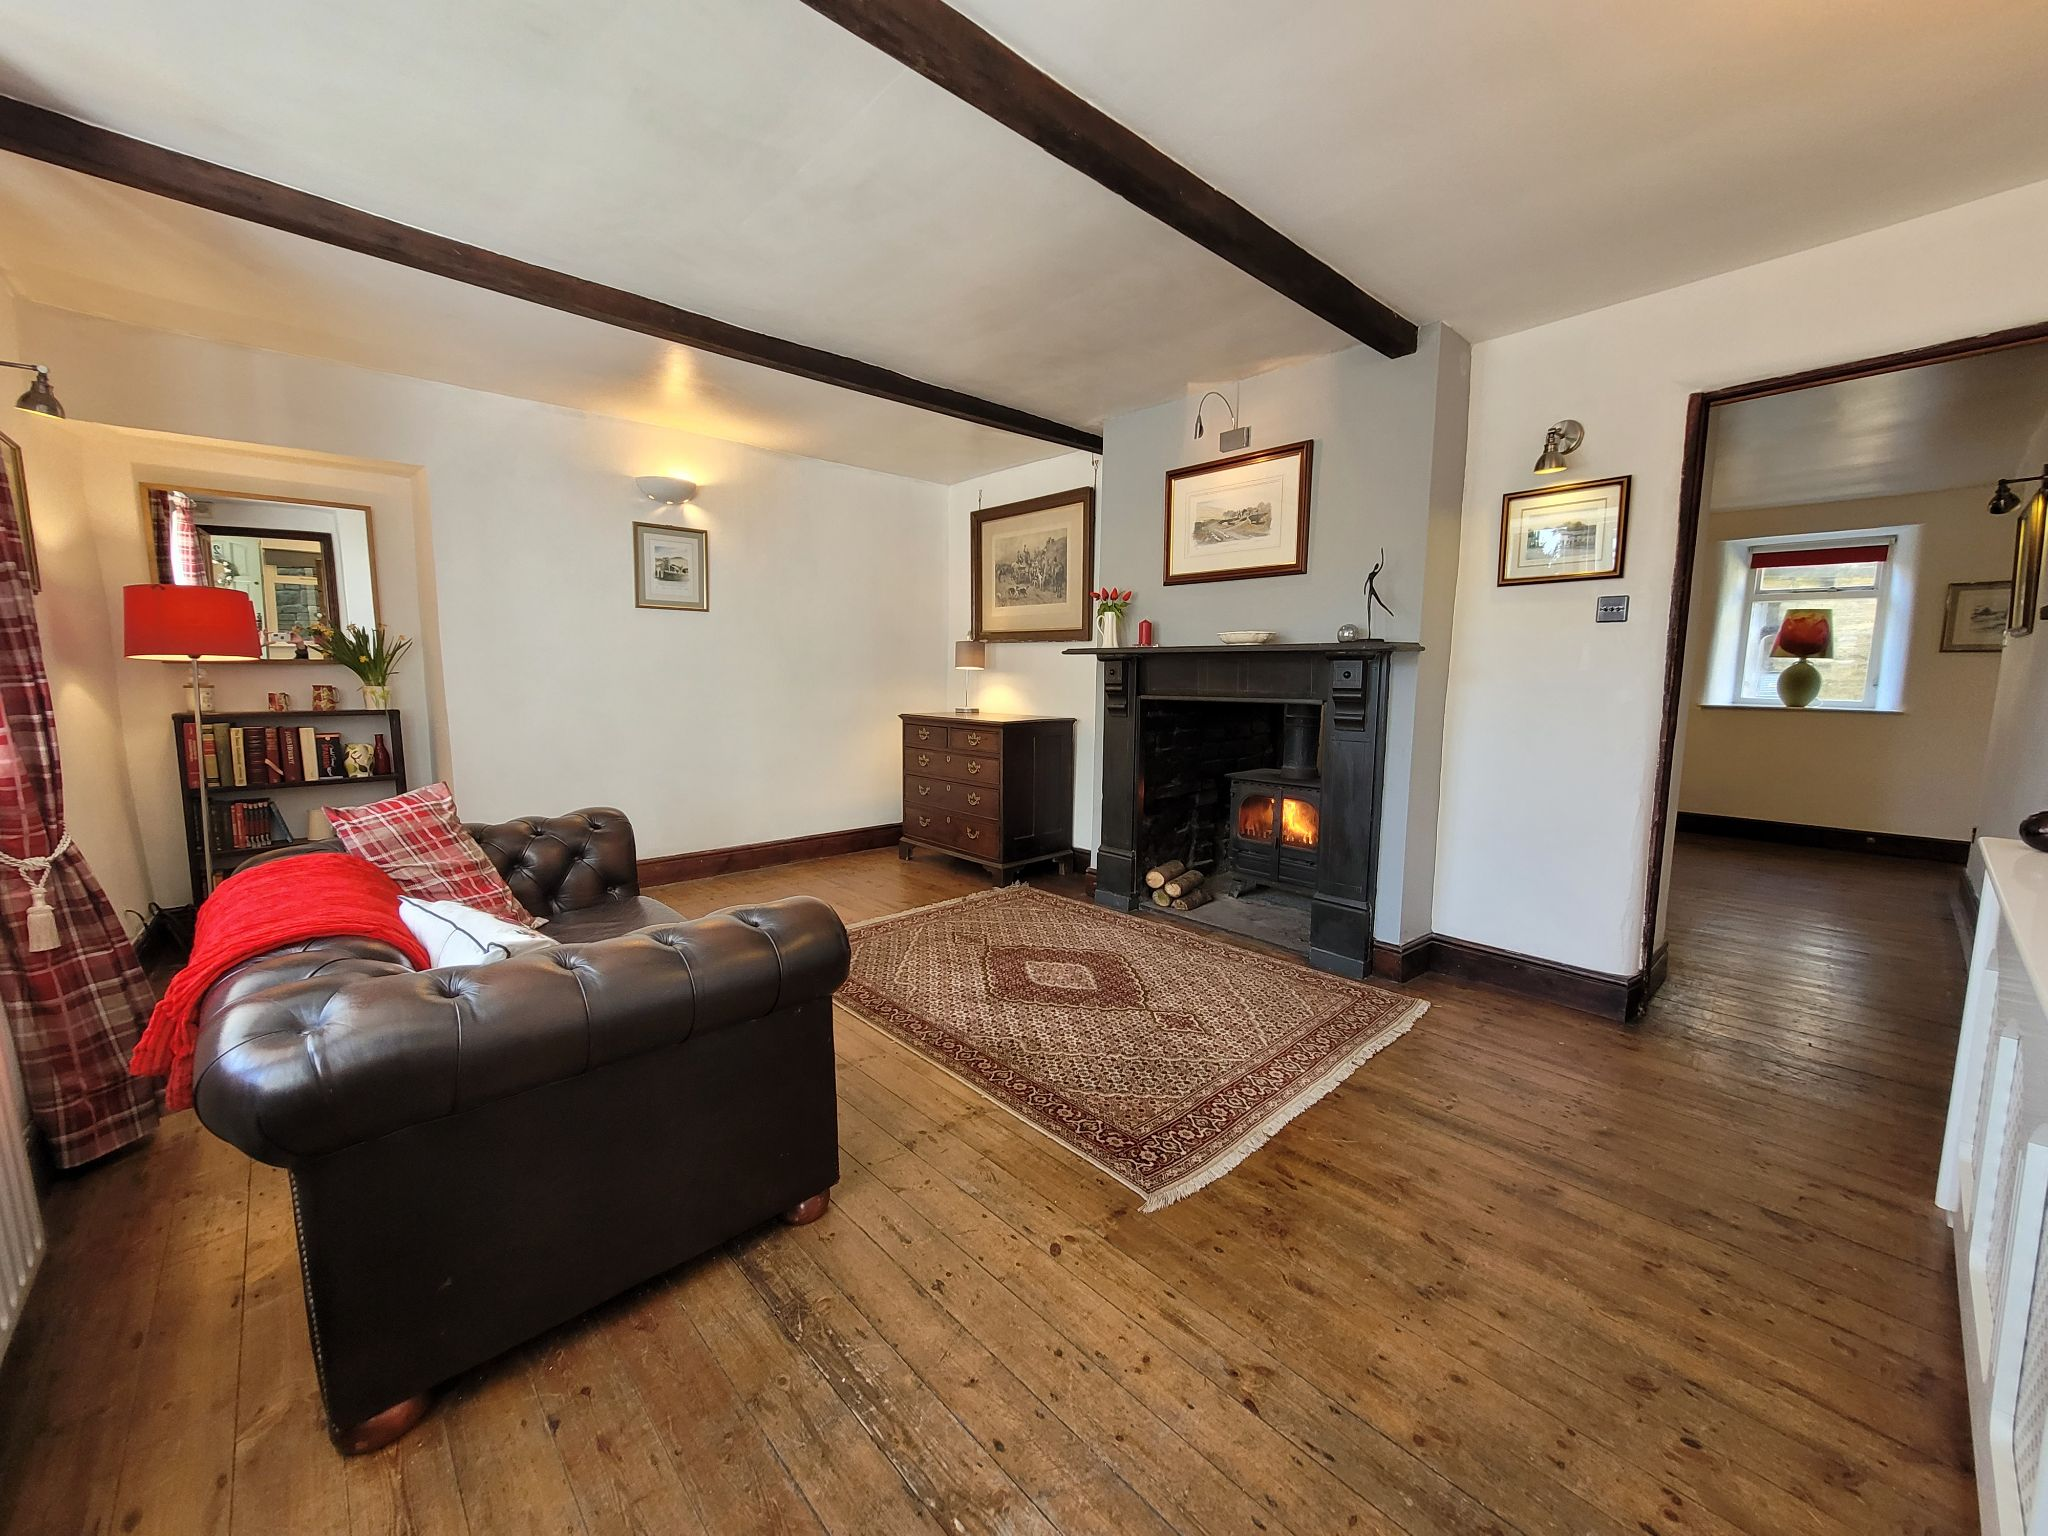 4 bedroom semi-detached house For Sale in Luddenden, Halifax - Photograph 4